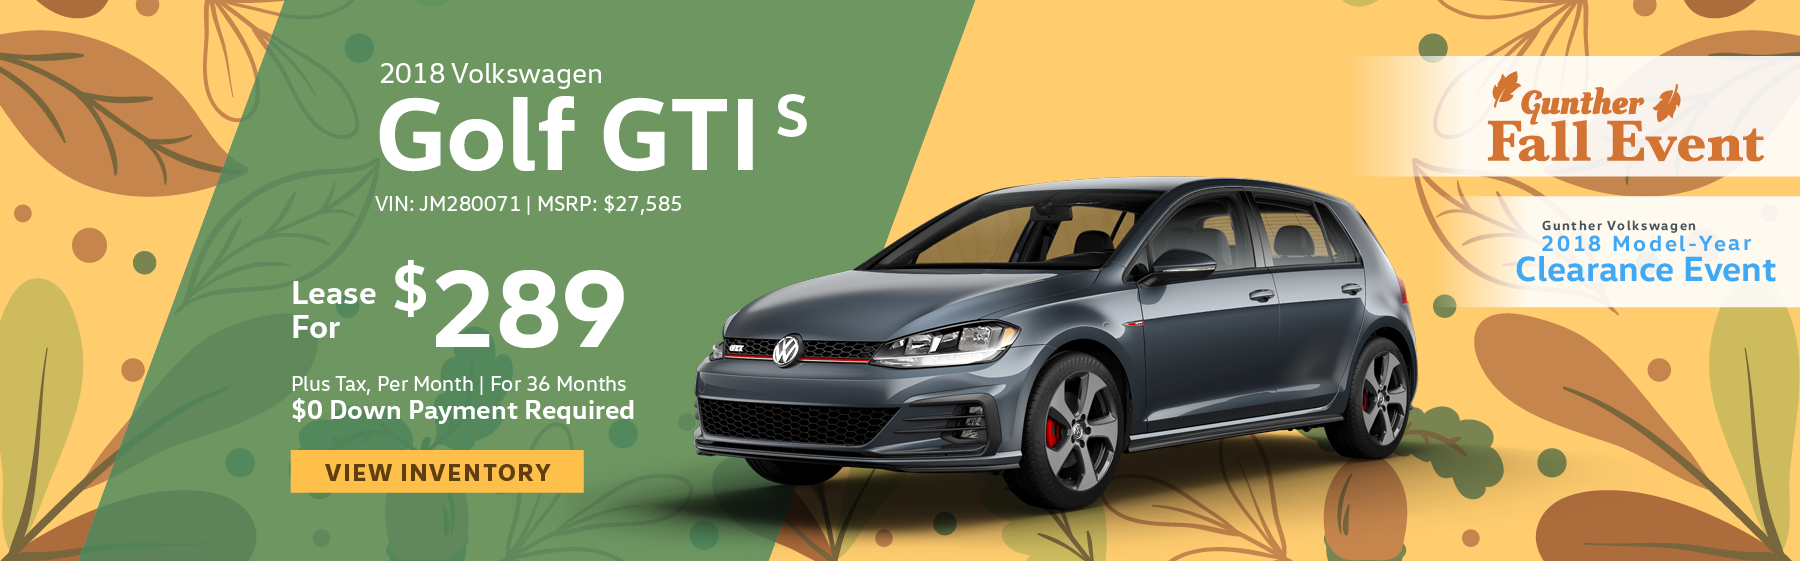 Lease the 2018 Volkswagen Golf GTI S for $289 per month, plus tax for 36 months. Click here to view inventory.